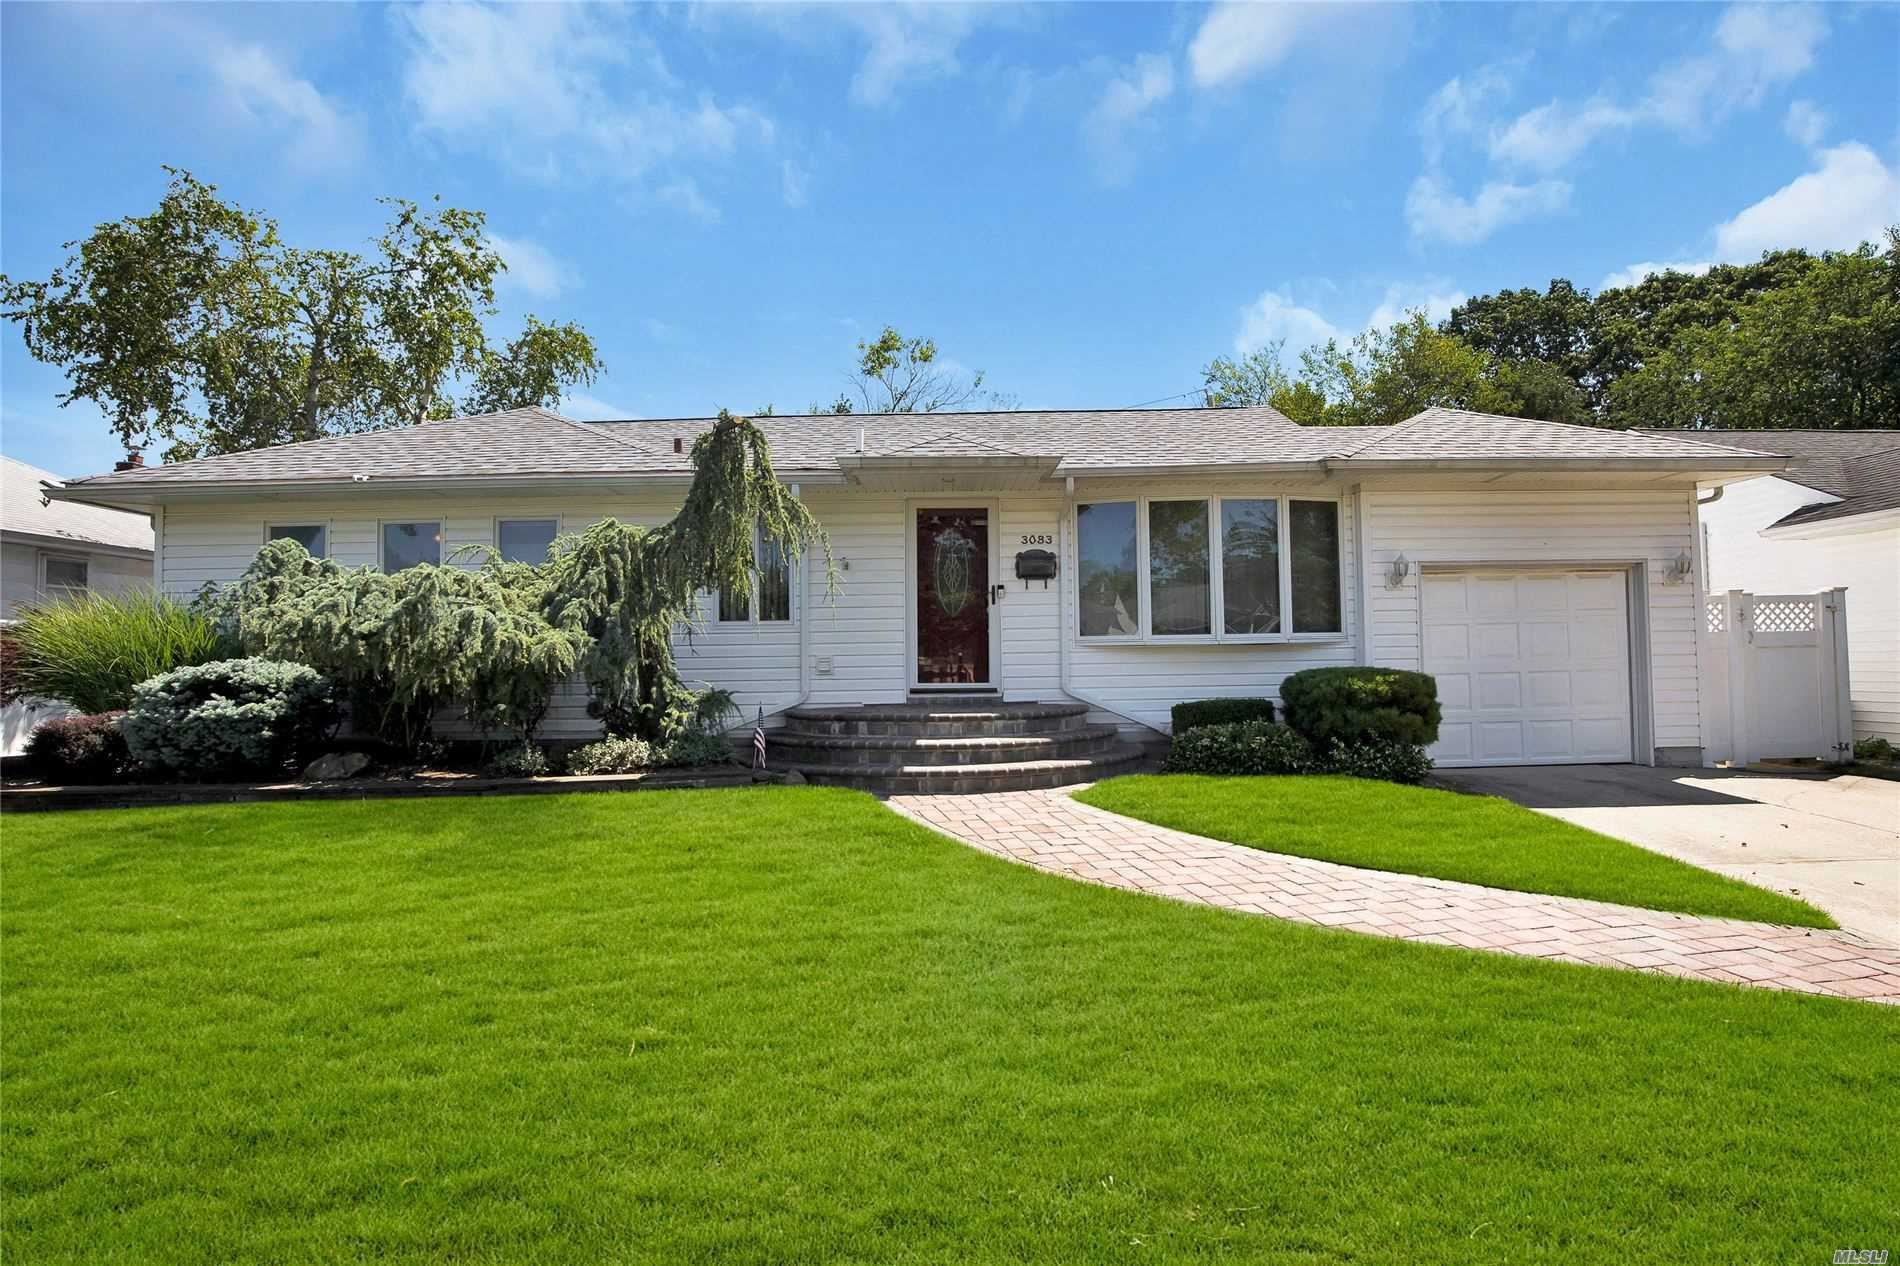 3083 Morgan Dr, Wantagh, NY 11793 - MLS#: 3237713